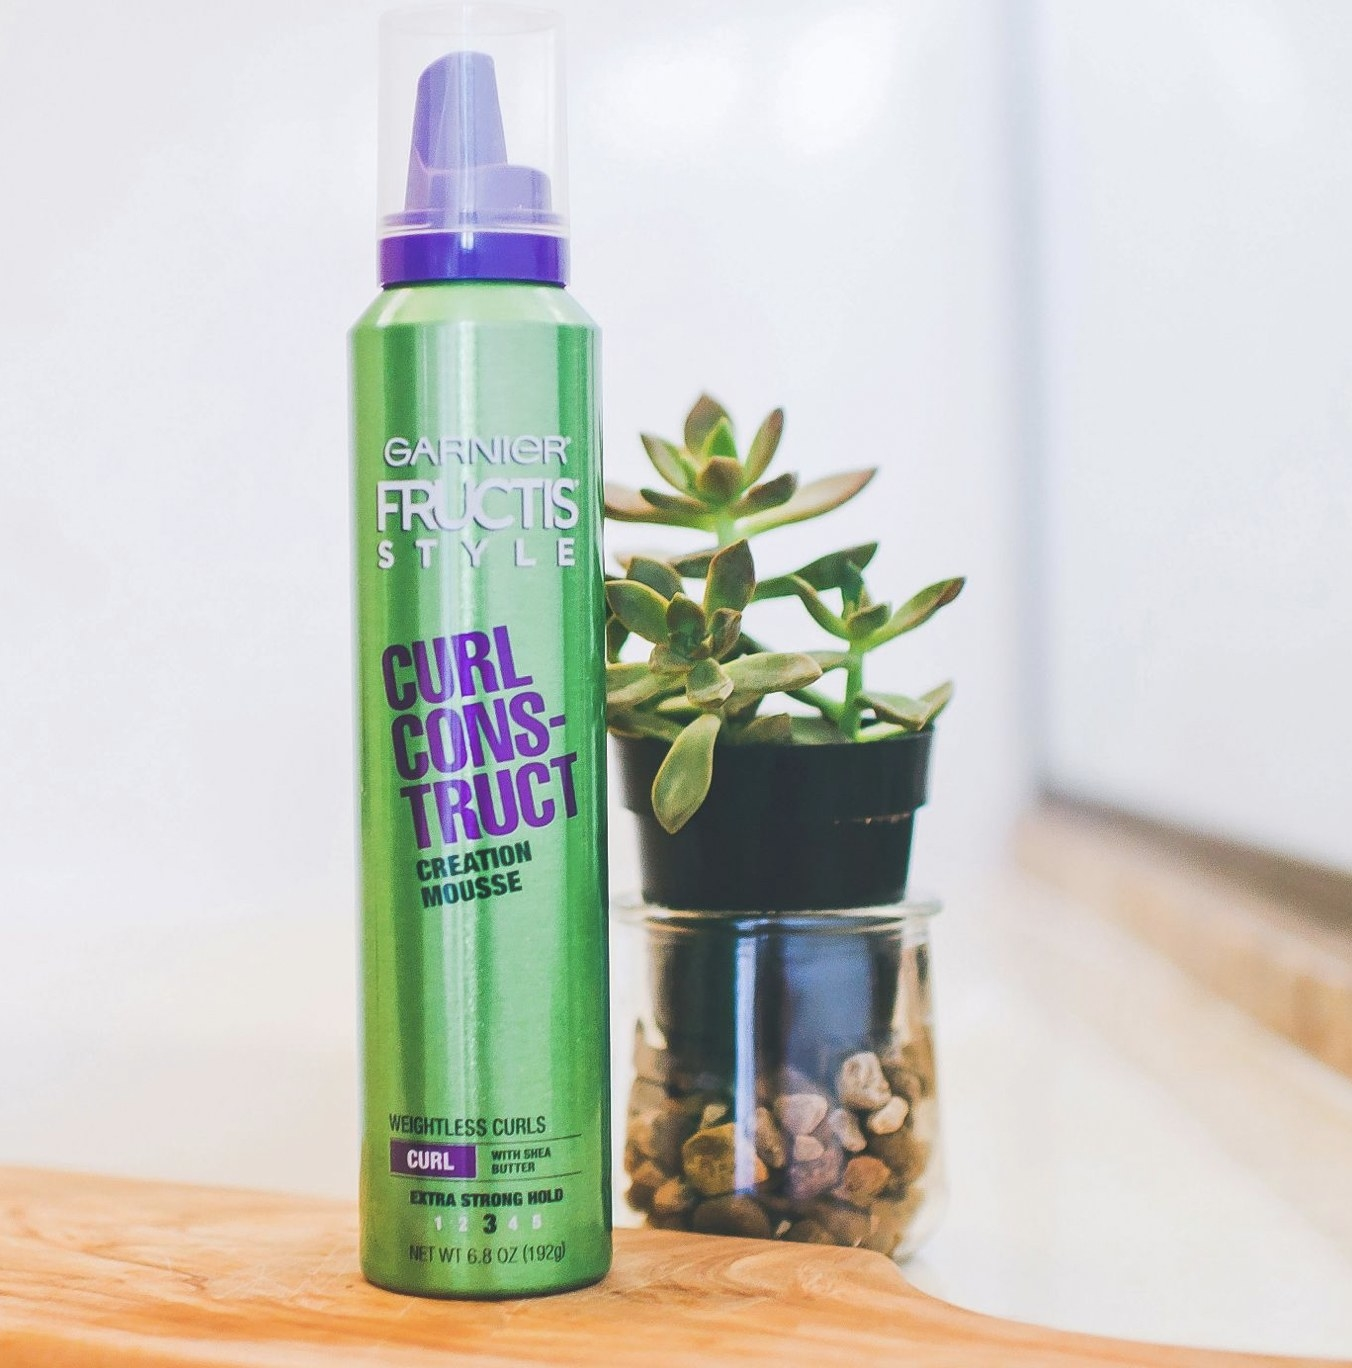 A green can of hair mousse